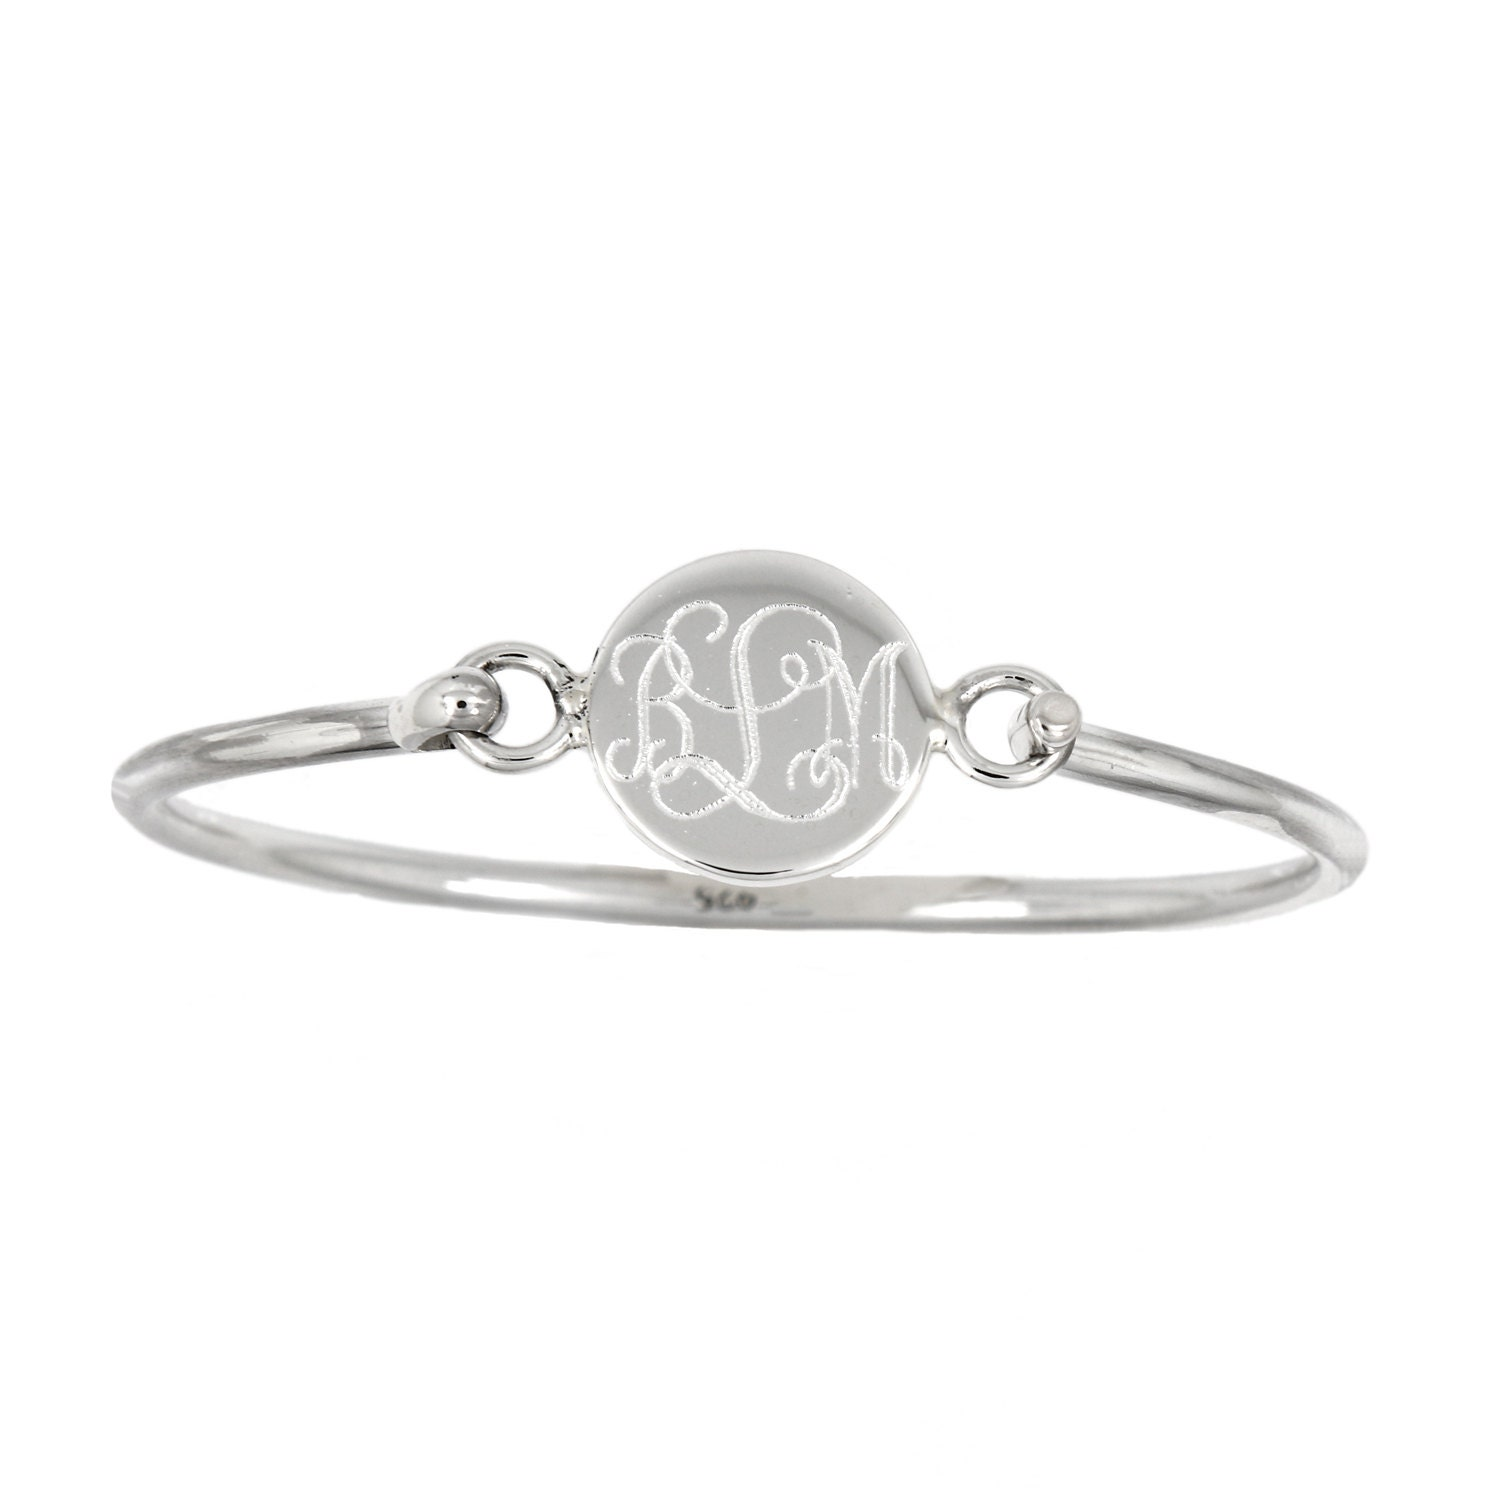 sterling silver monogrammable engravable round bangle bracelet. Black Bedroom Furniture Sets. Home Design Ideas